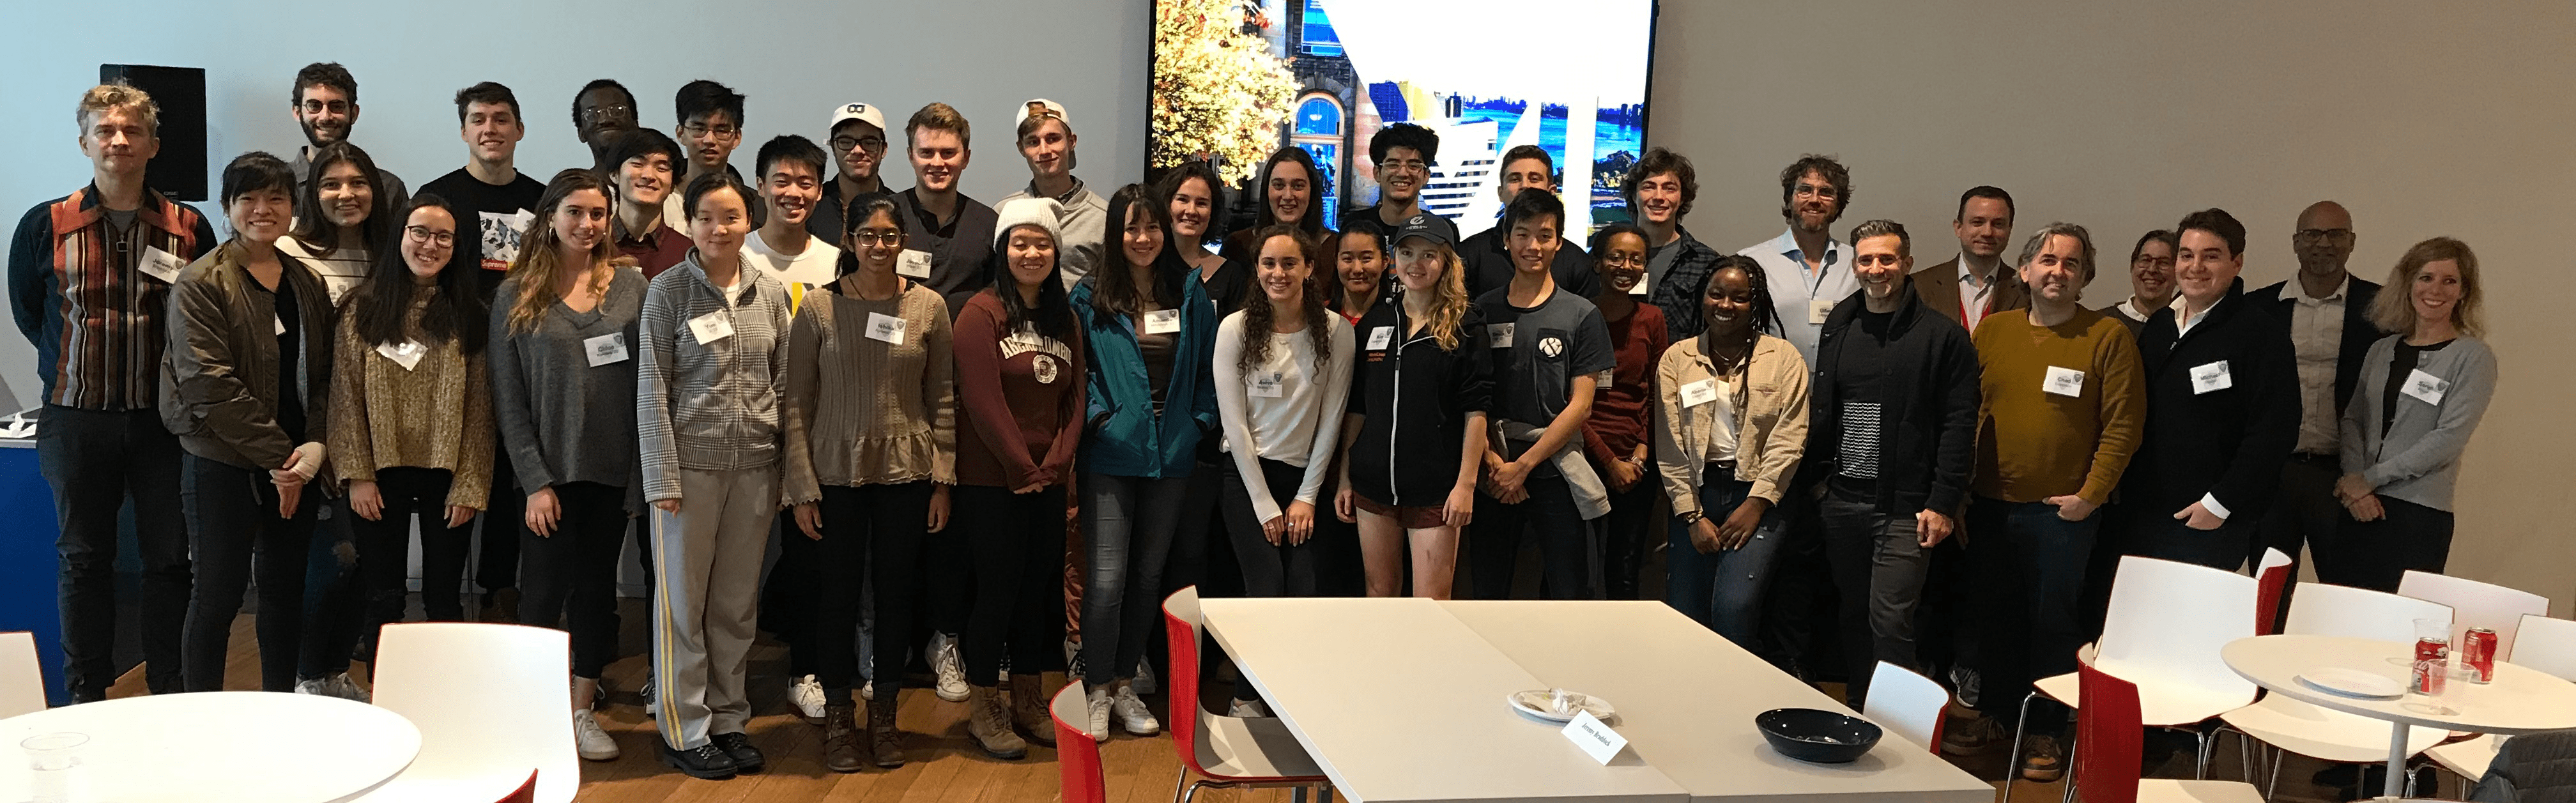 Milstein Students, Faculty Directors, Fellows and Advisory Council at Cornell tech.png